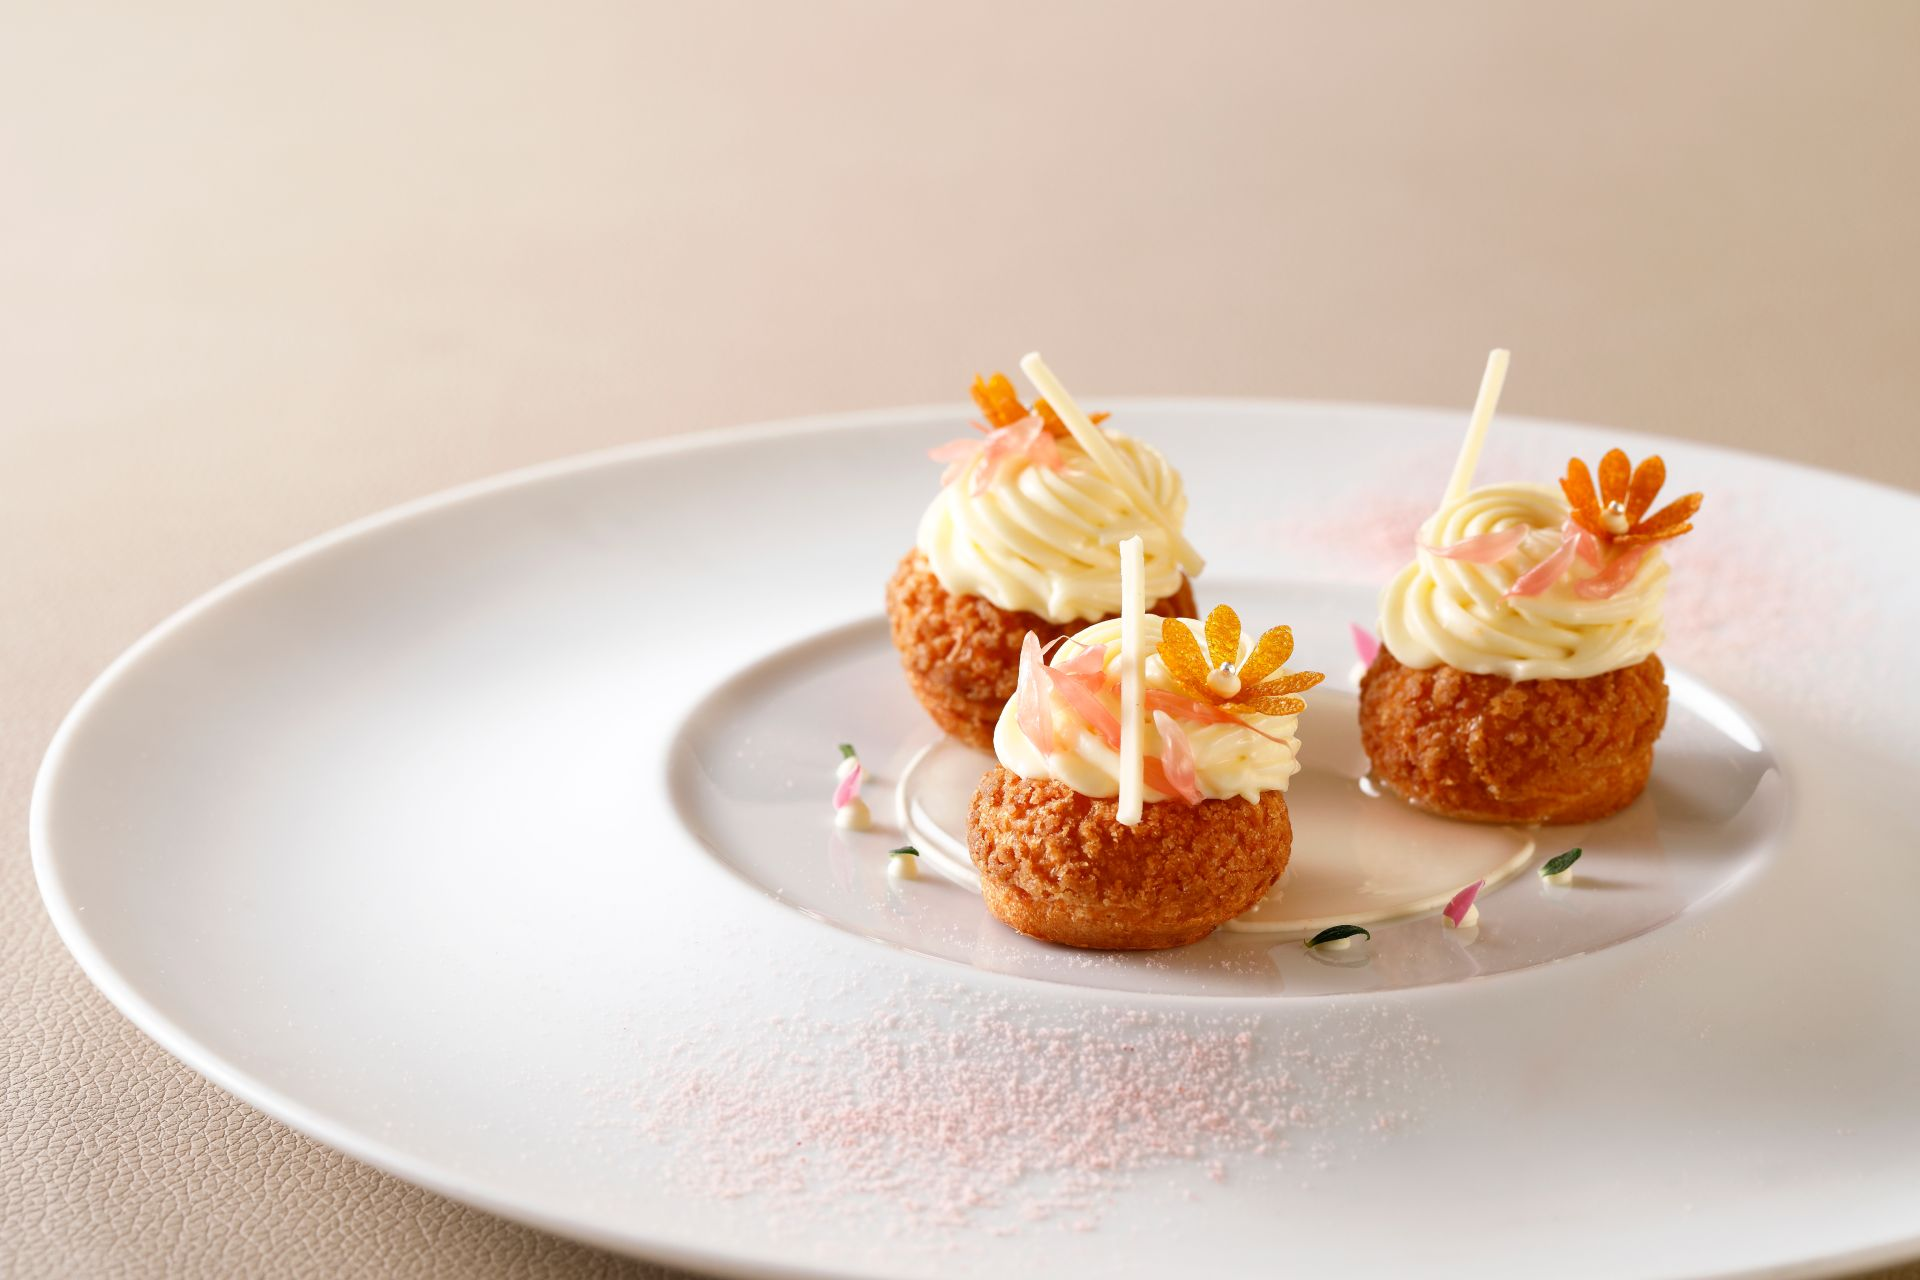 Tate Dining Room_Chinese Citrus Mousse in Choux Puff with Pink Grapefruit Sorbert